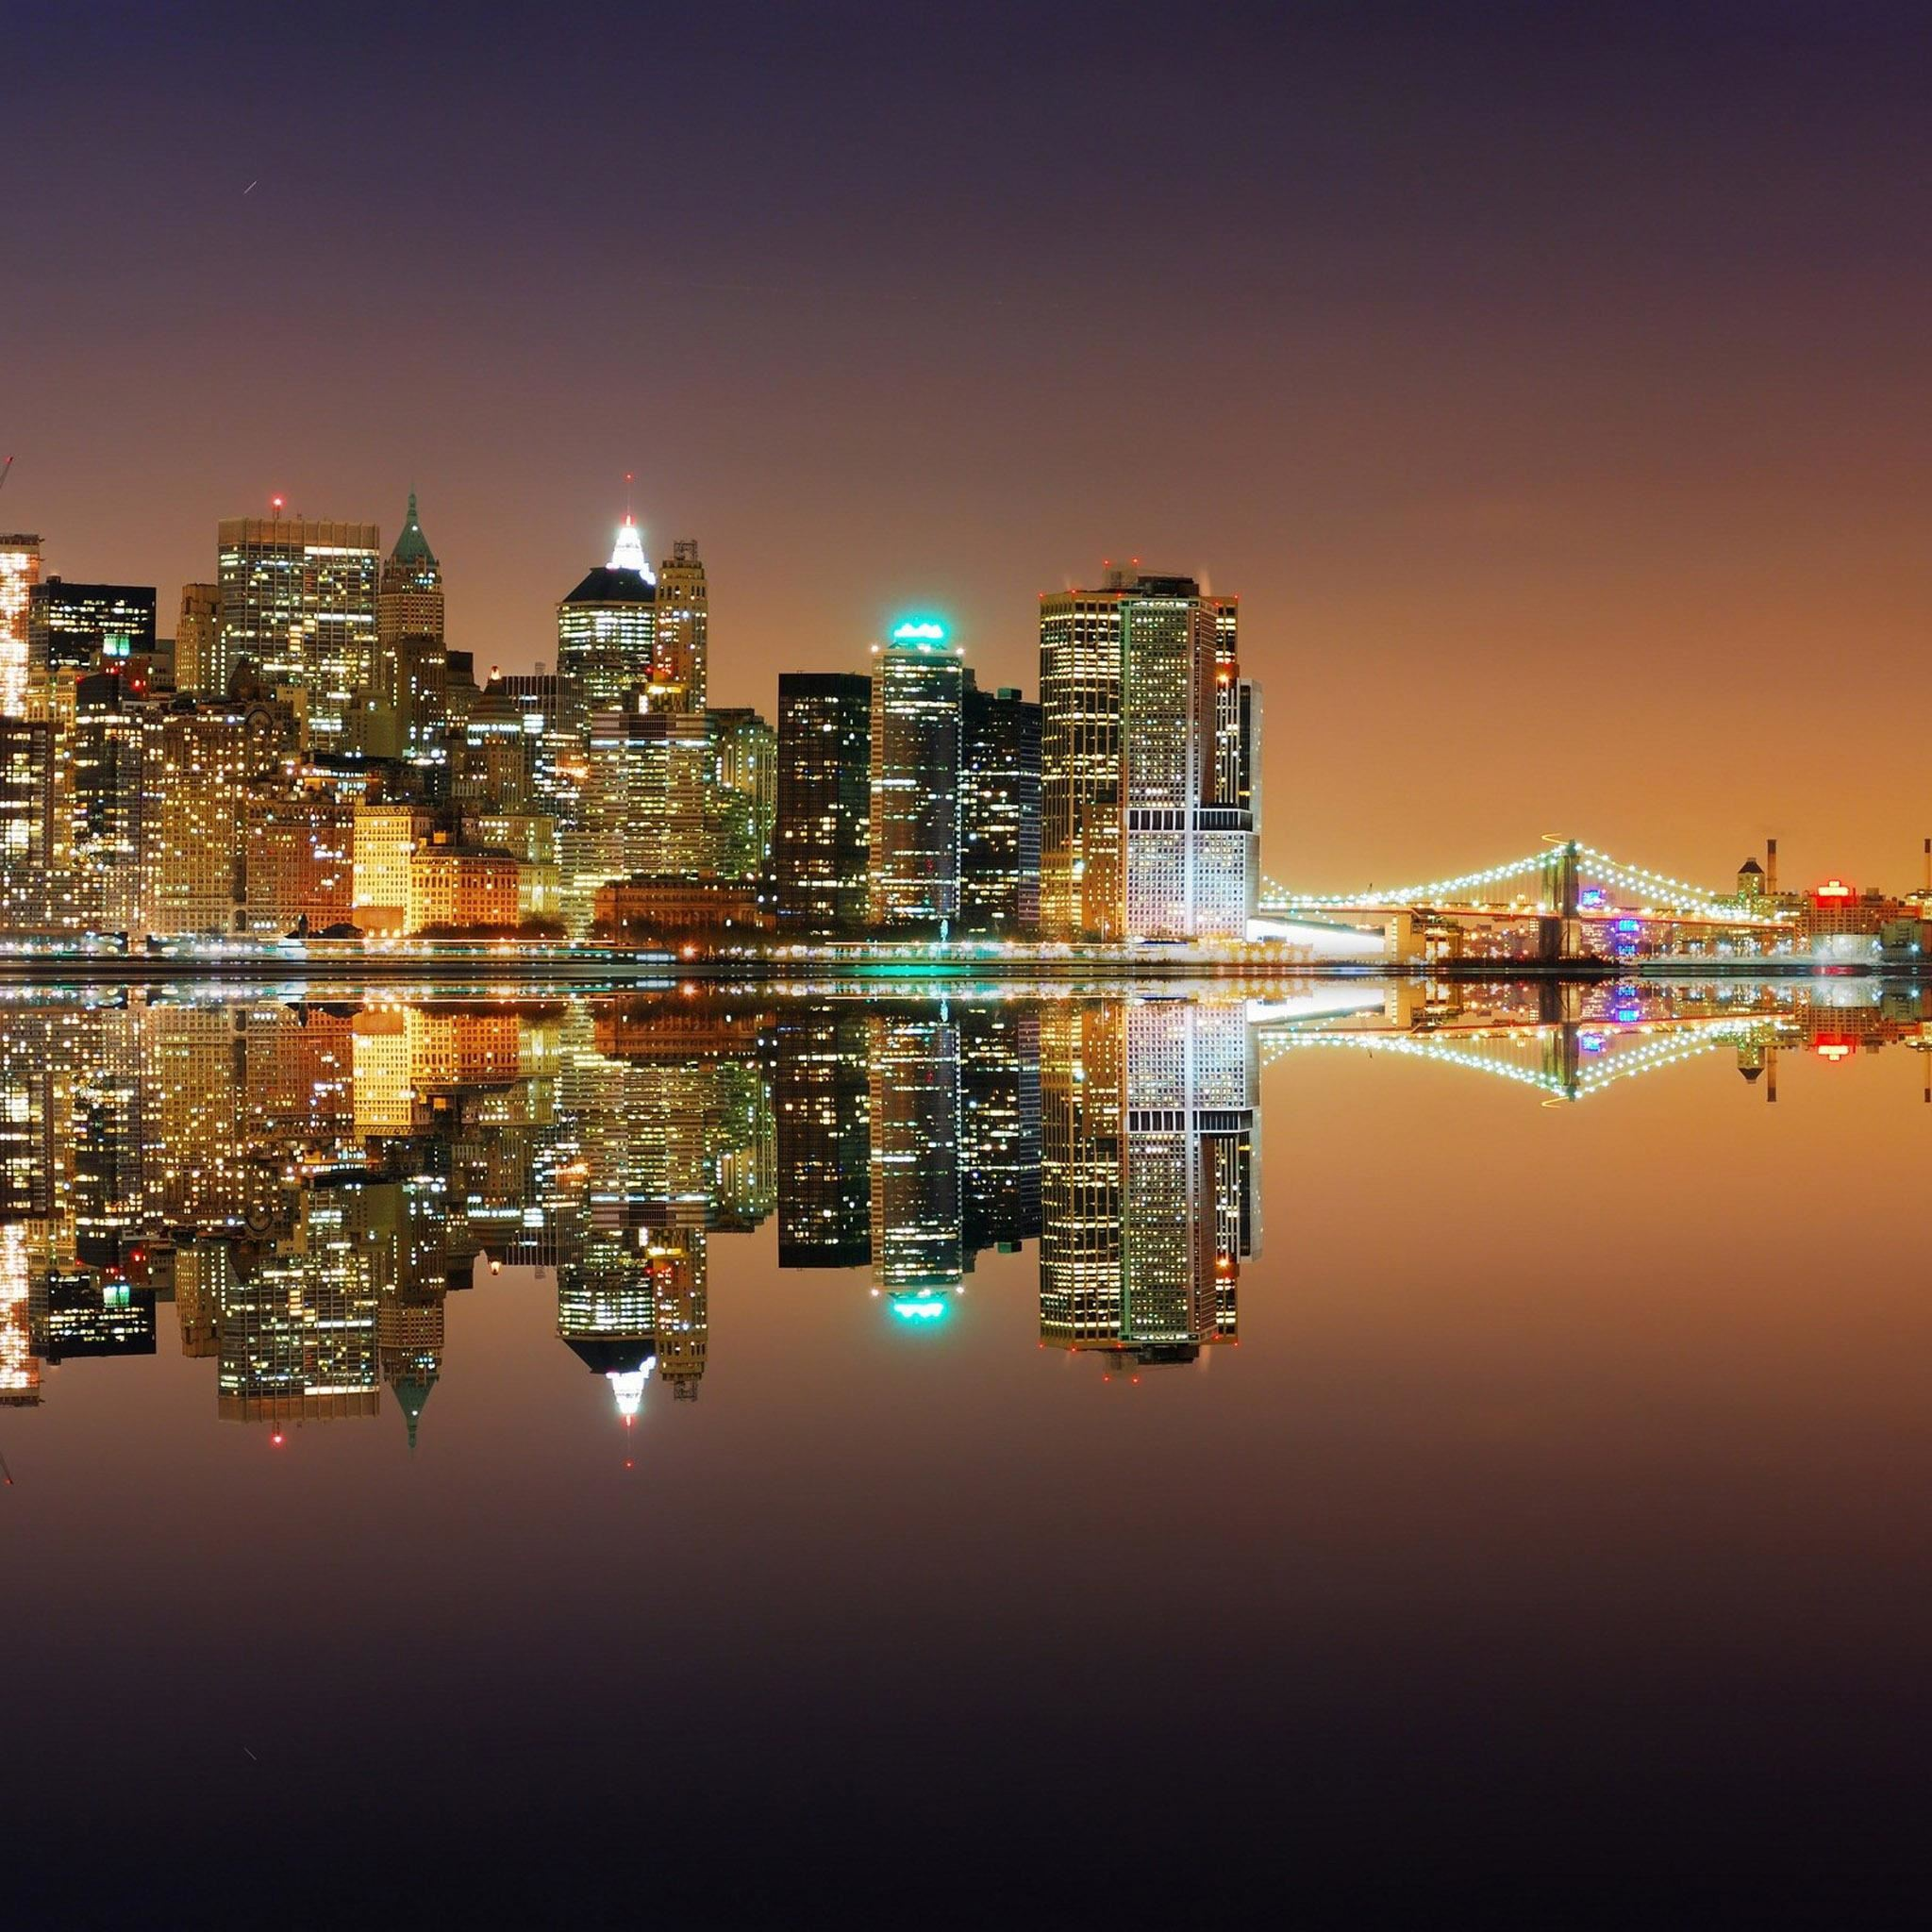 Lively Night Cityscape River Bank iPad Air wallpaper